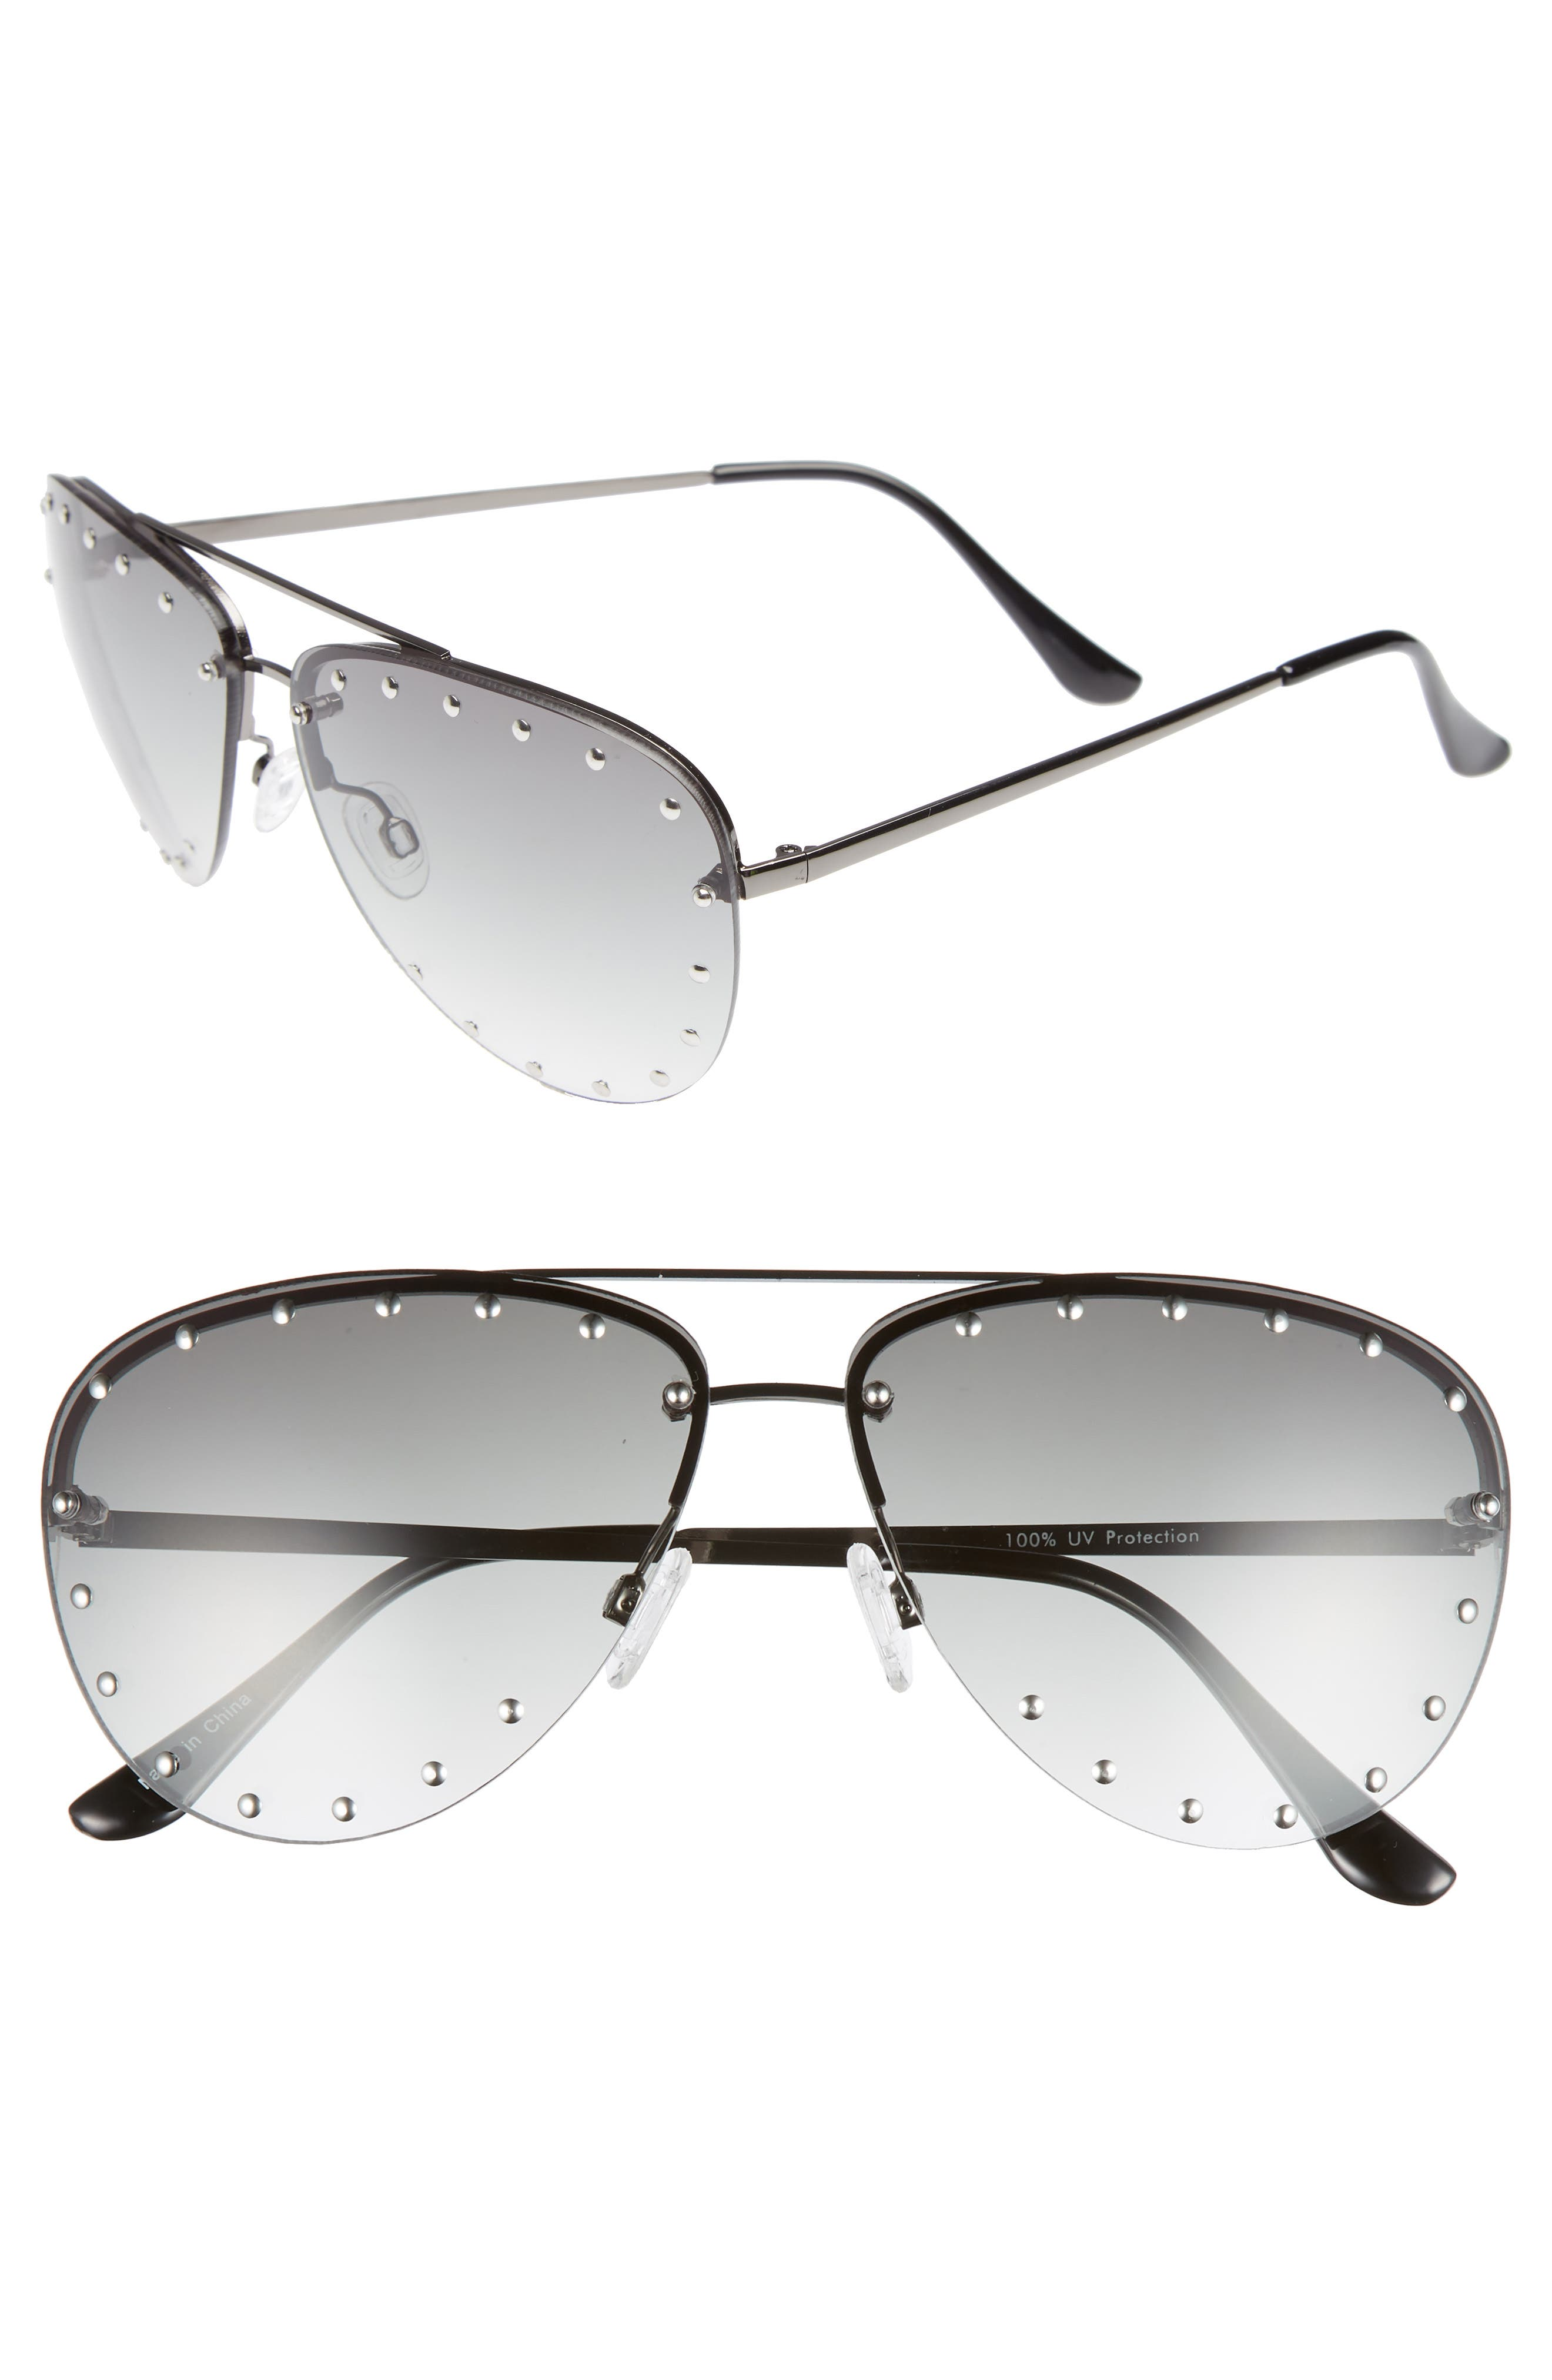 63mm Studded Aviator Sunglasses,                         Main,                         color, Silver/ Green